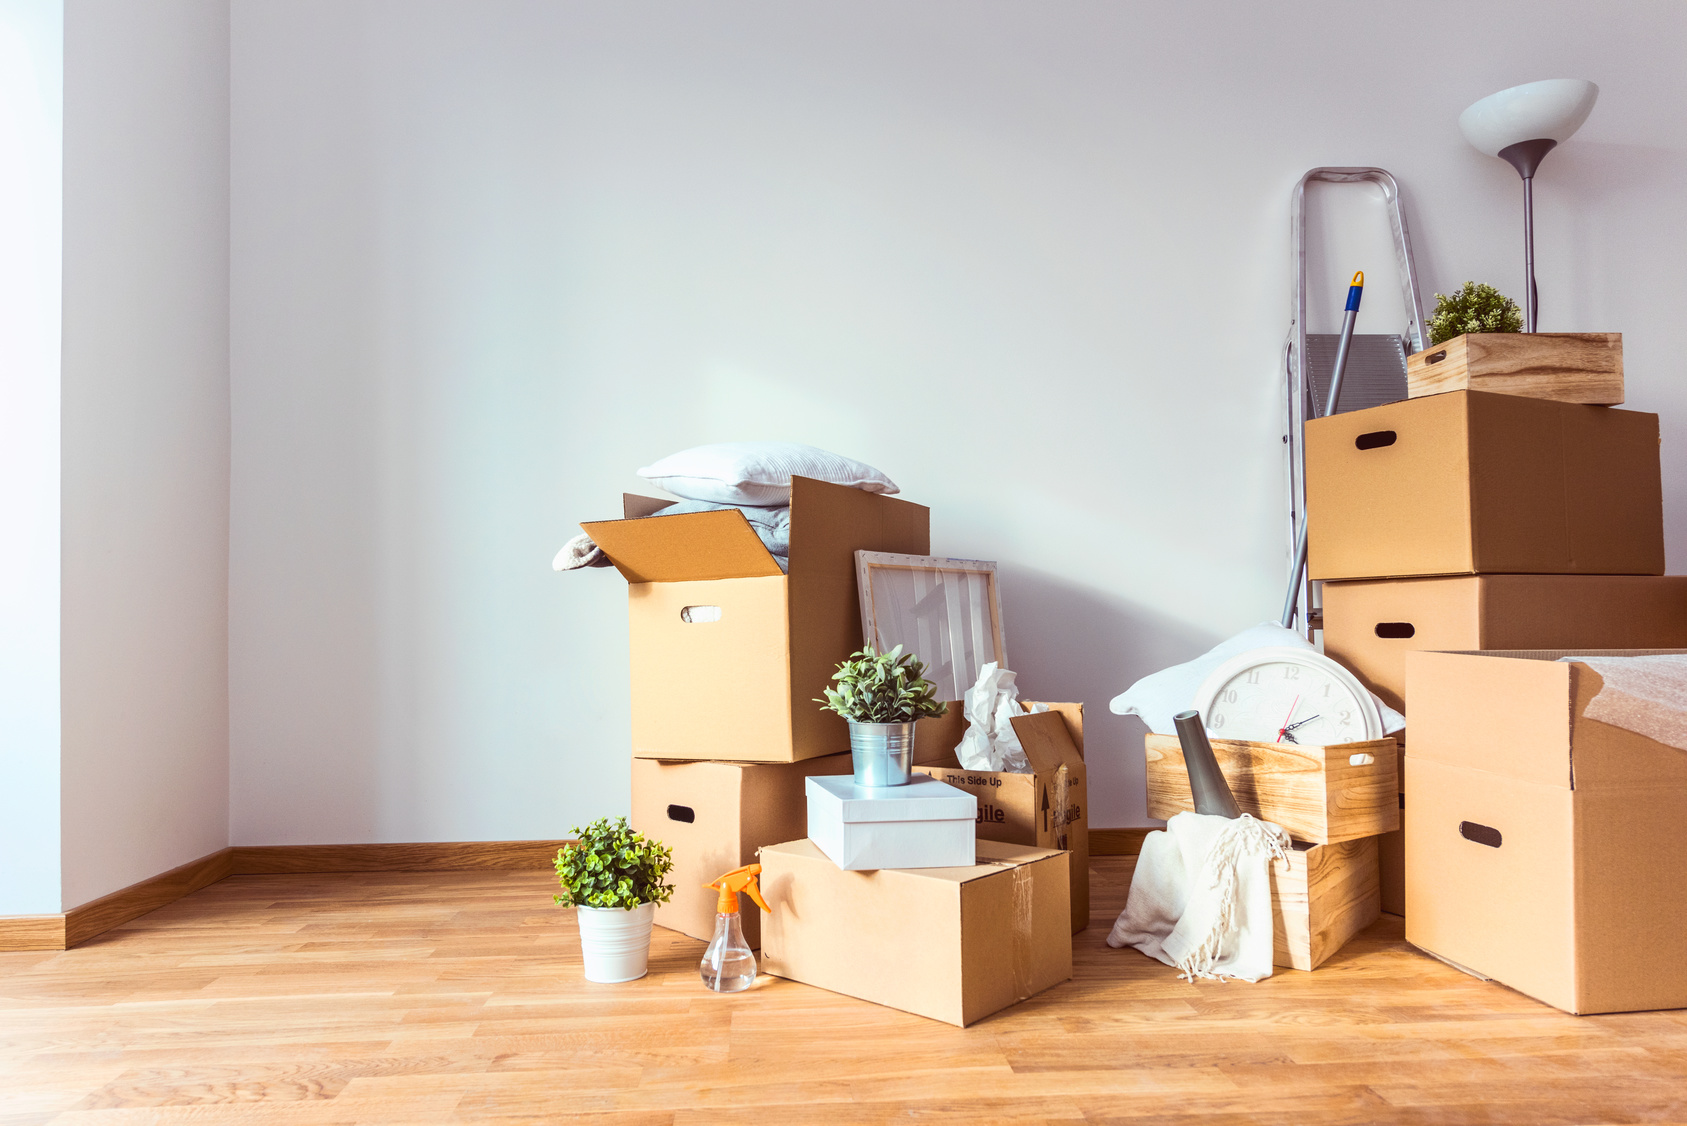 Cardboard boxes and cleaning things for moving into a new home